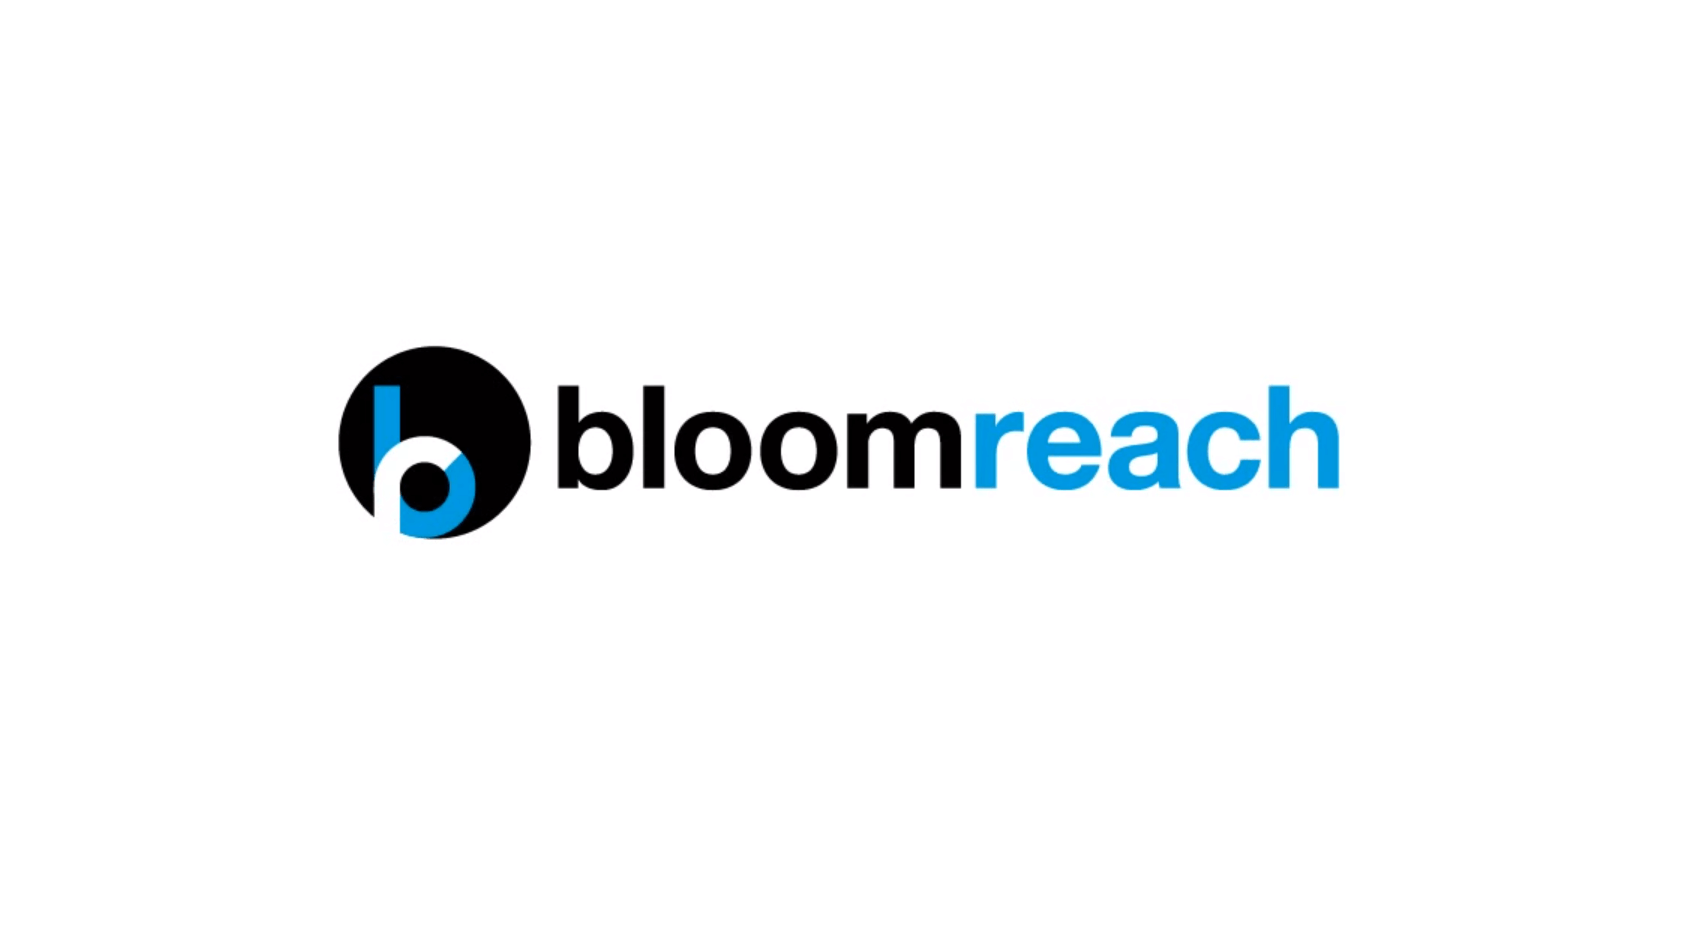 BloomReach lands $56M to deliver personalized marketing to